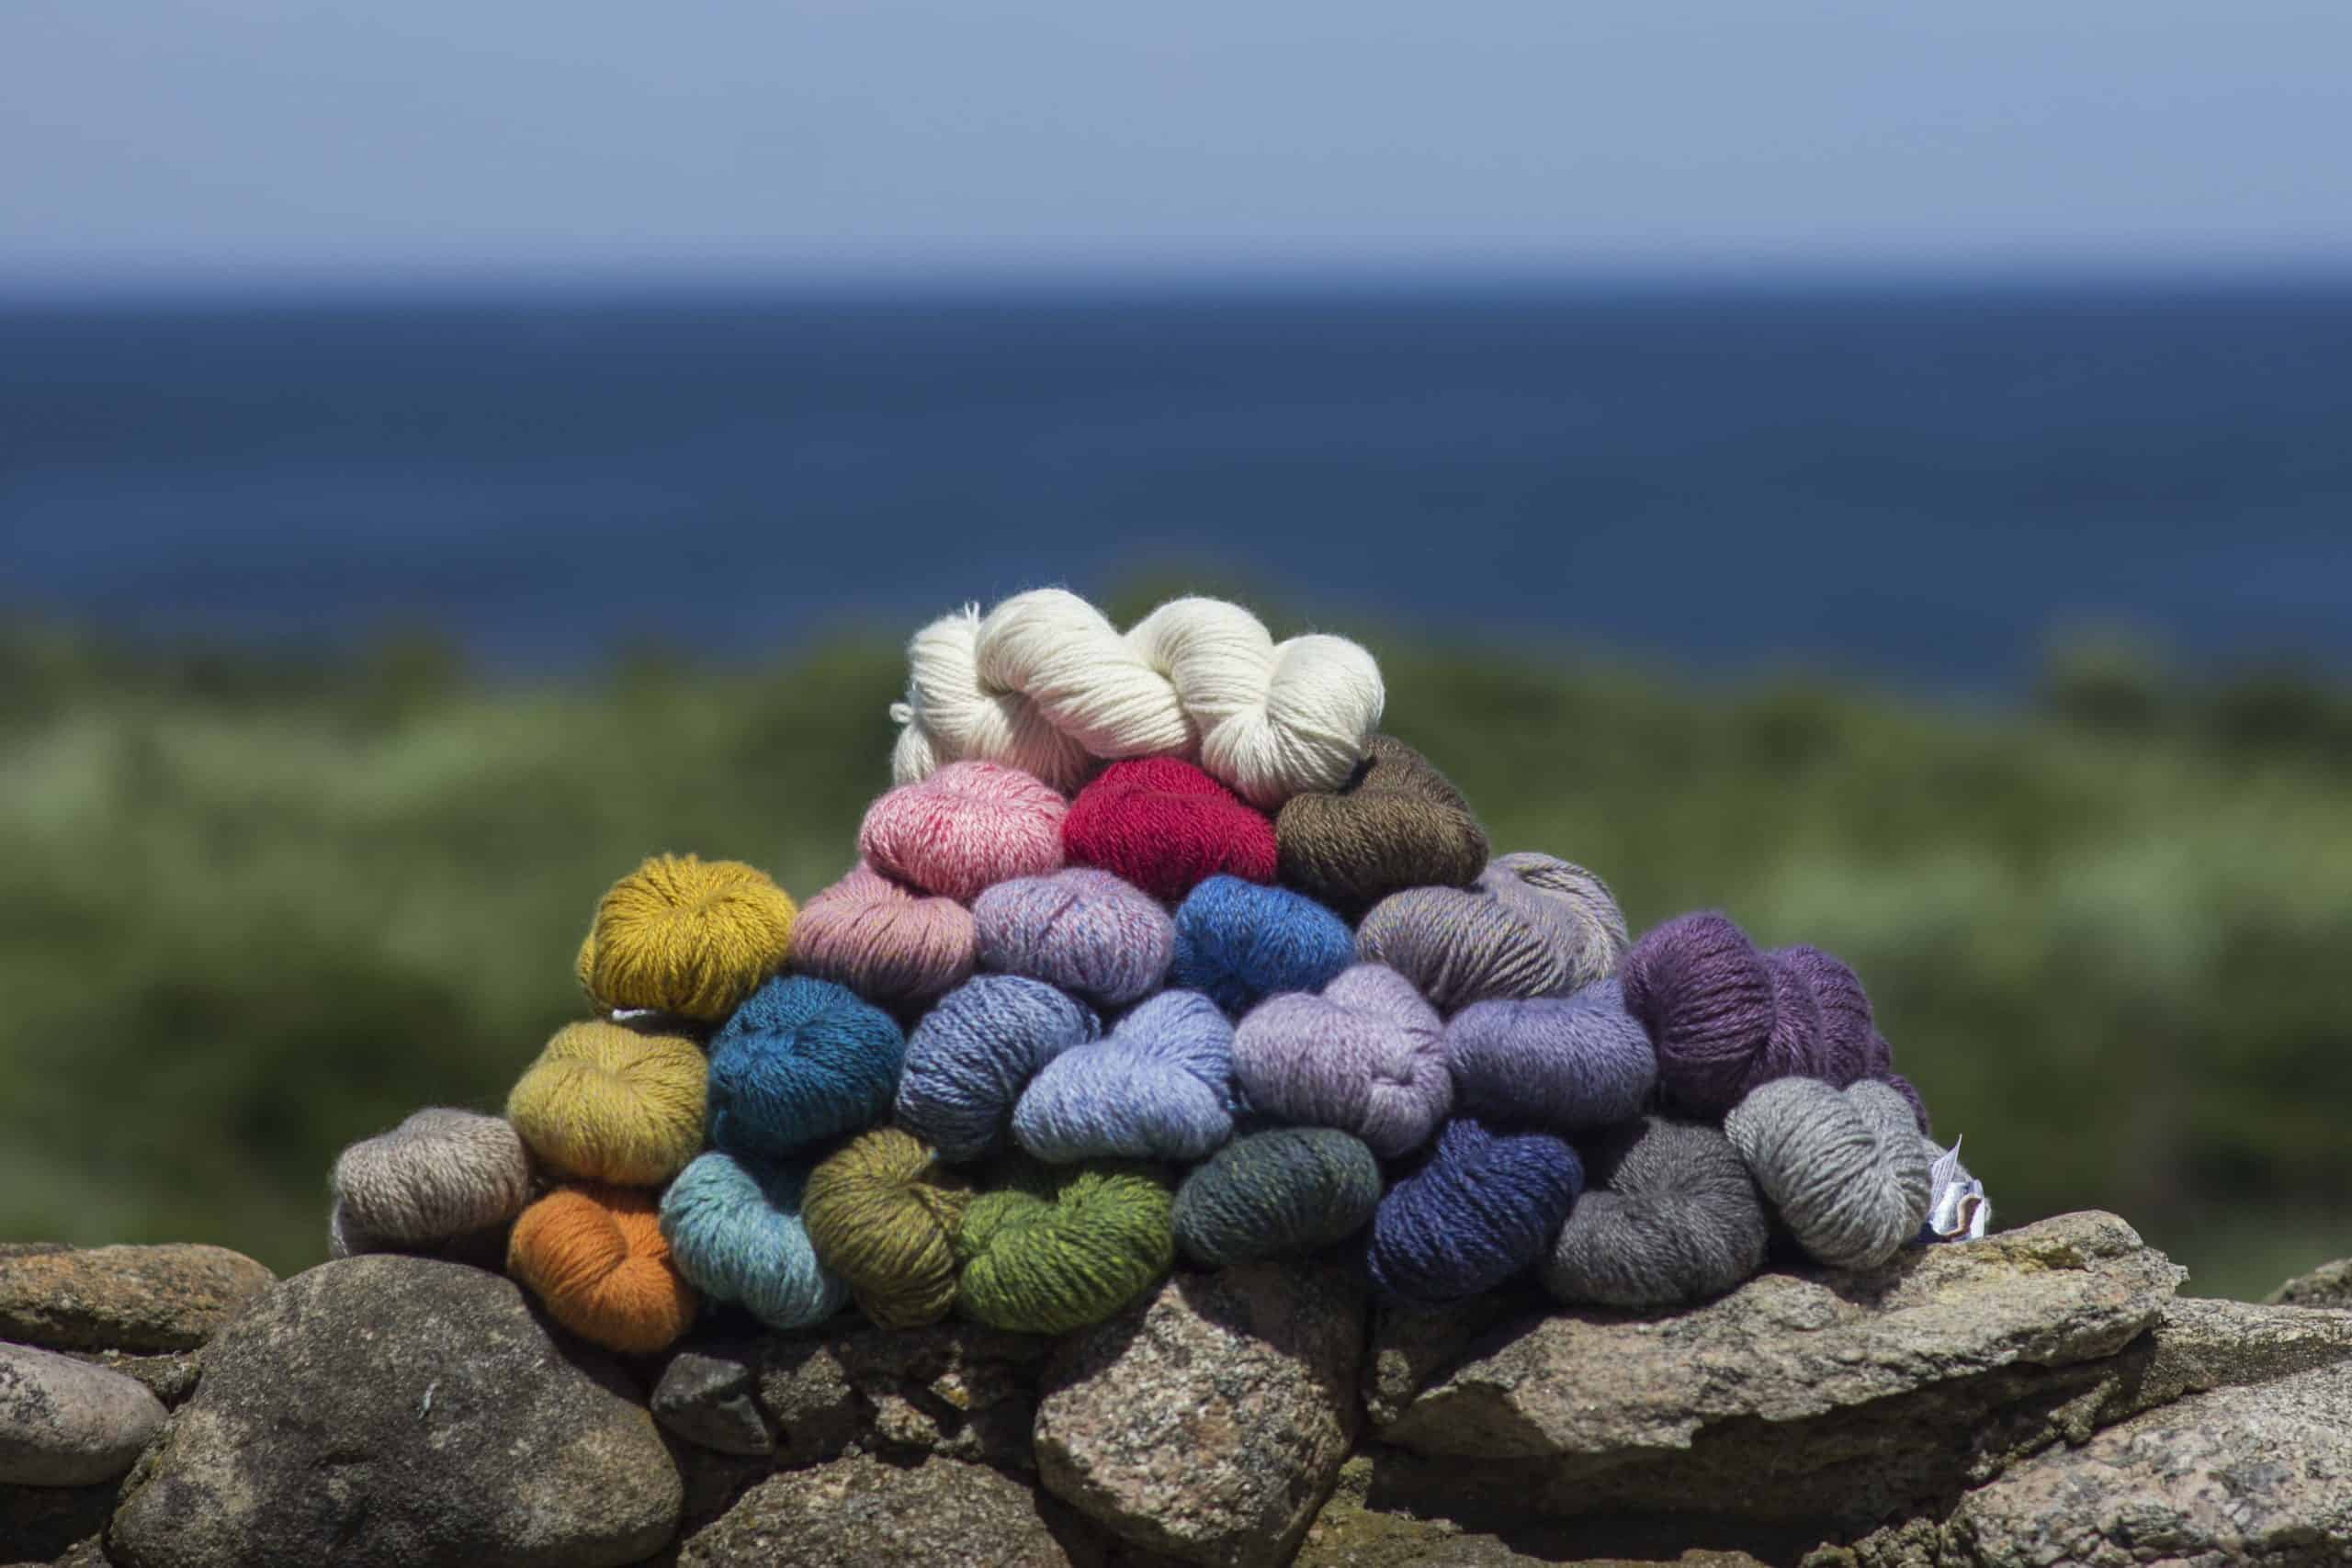 A pile of colorful yarn sitting on a rock.